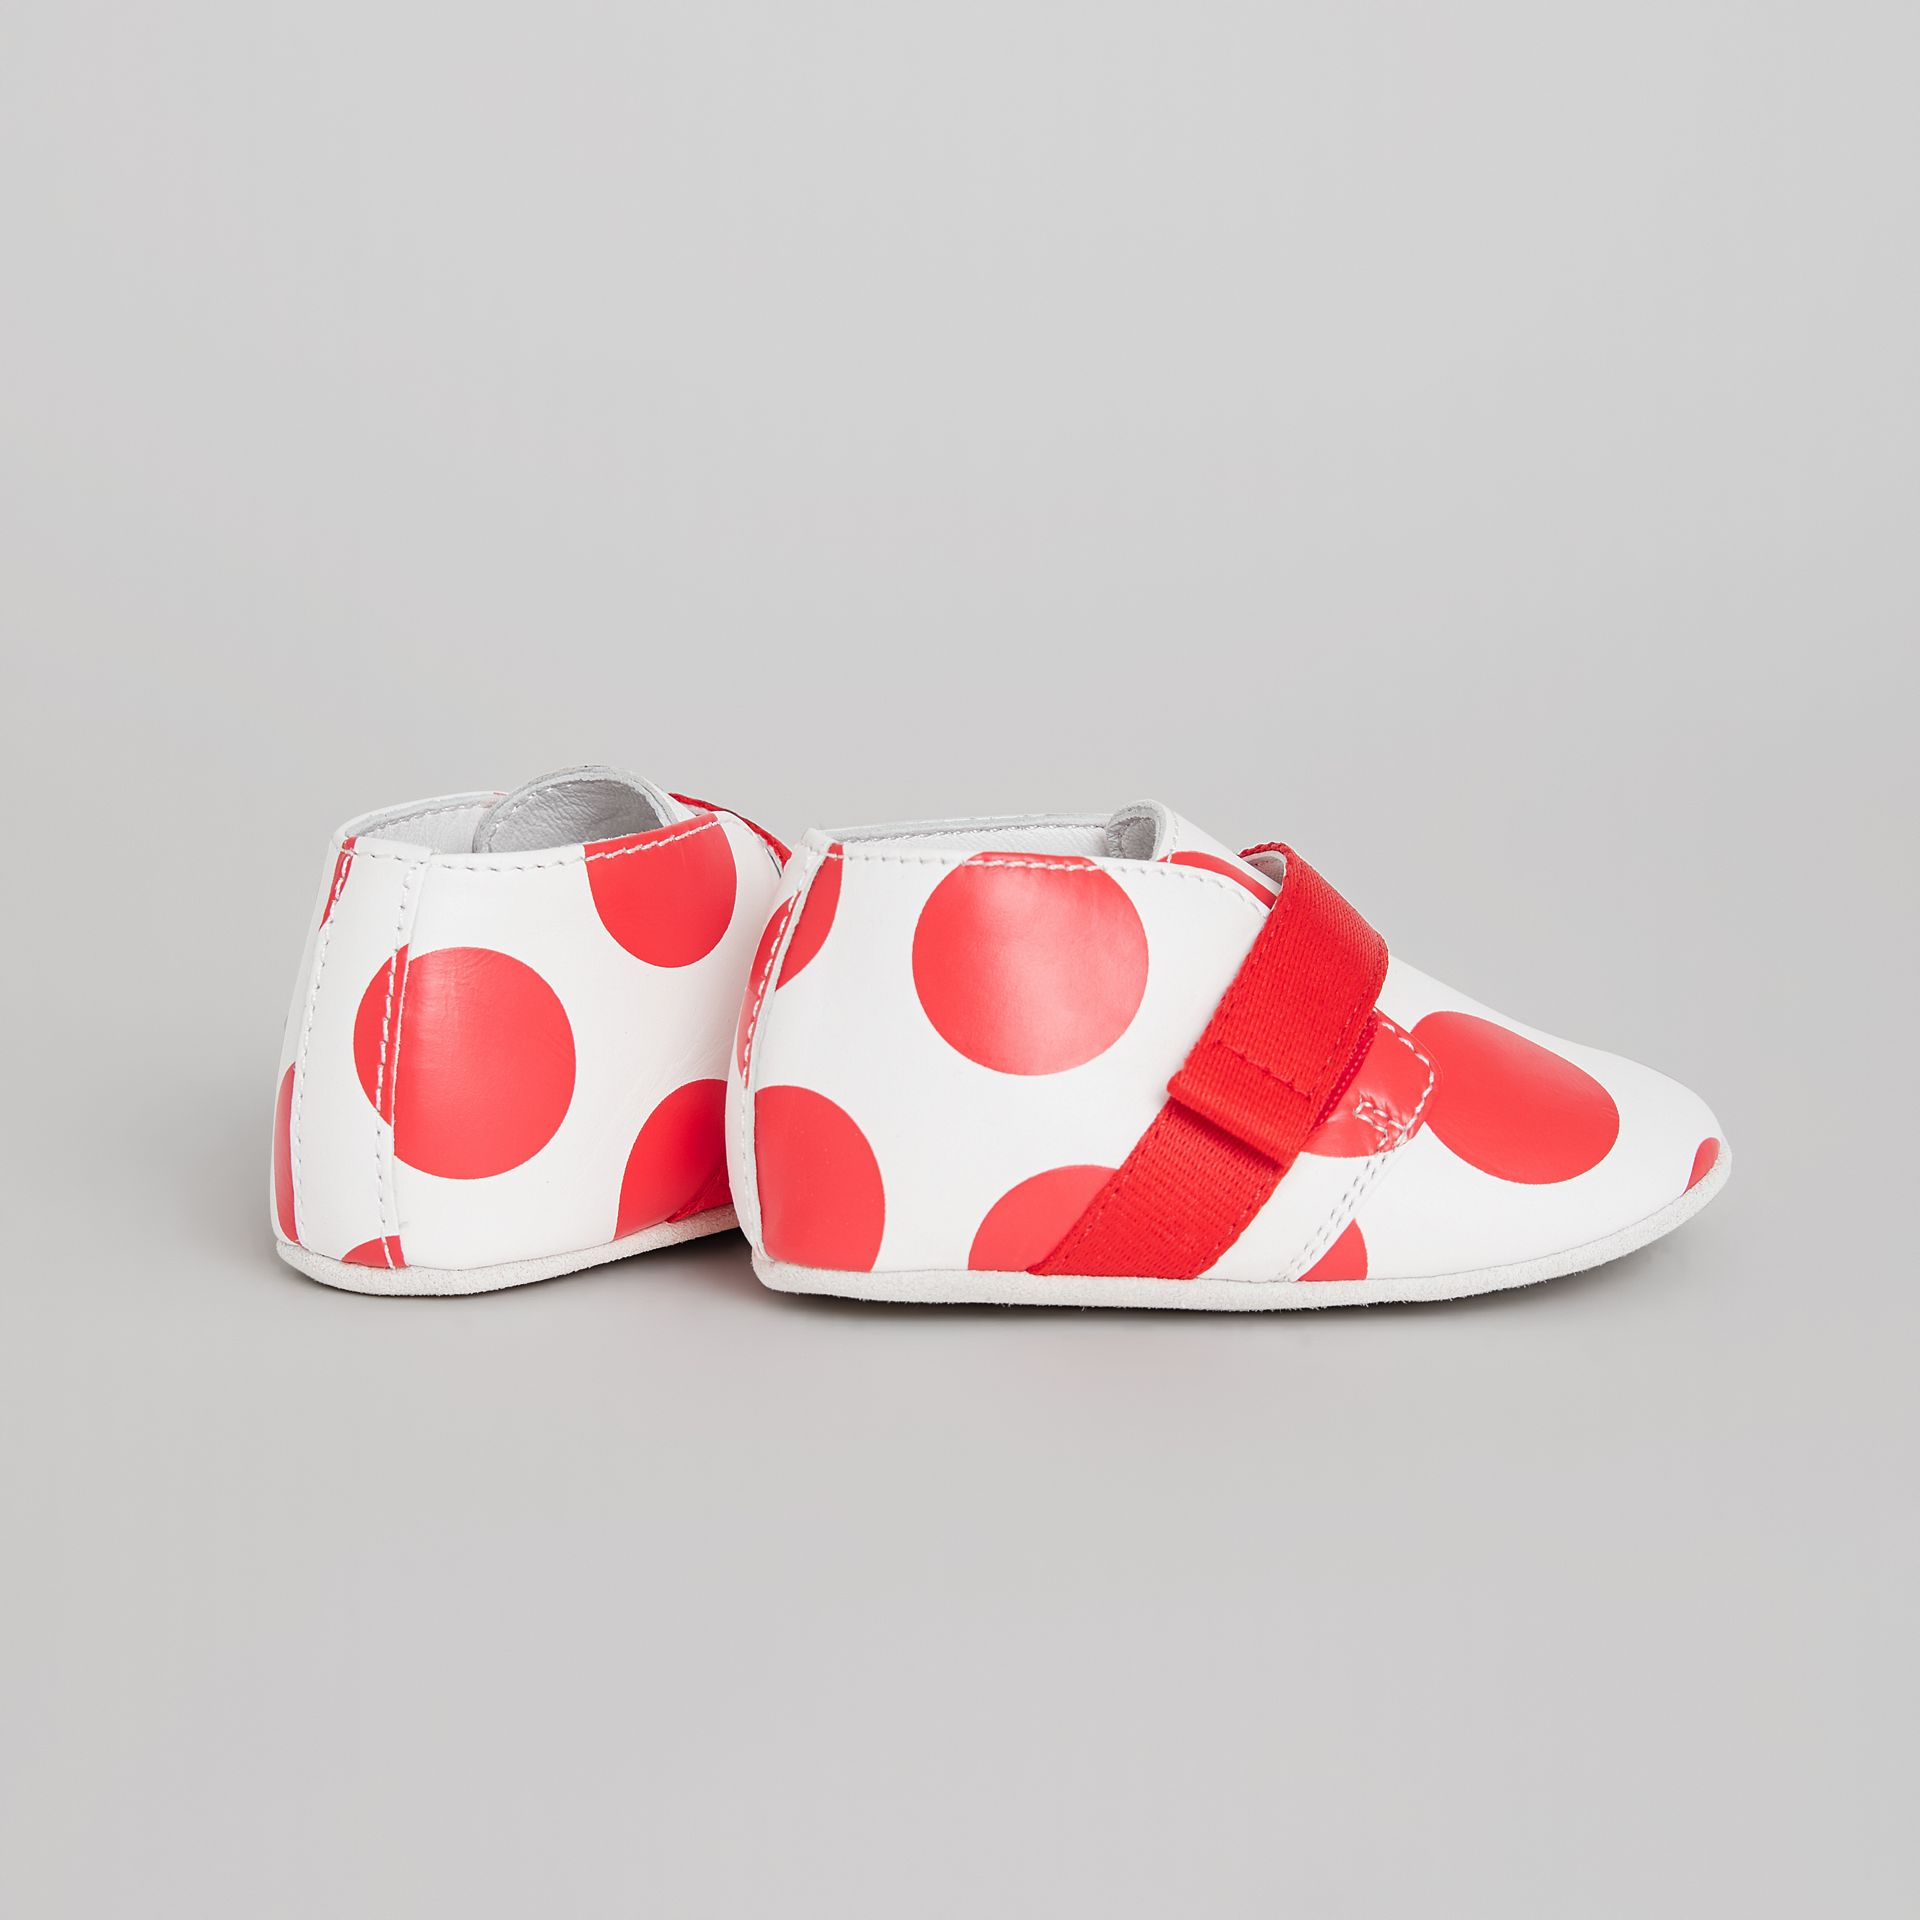 Spot Print Leather Shoes in Bright Red - Children | Burberry United Kingdom - gallery image 2